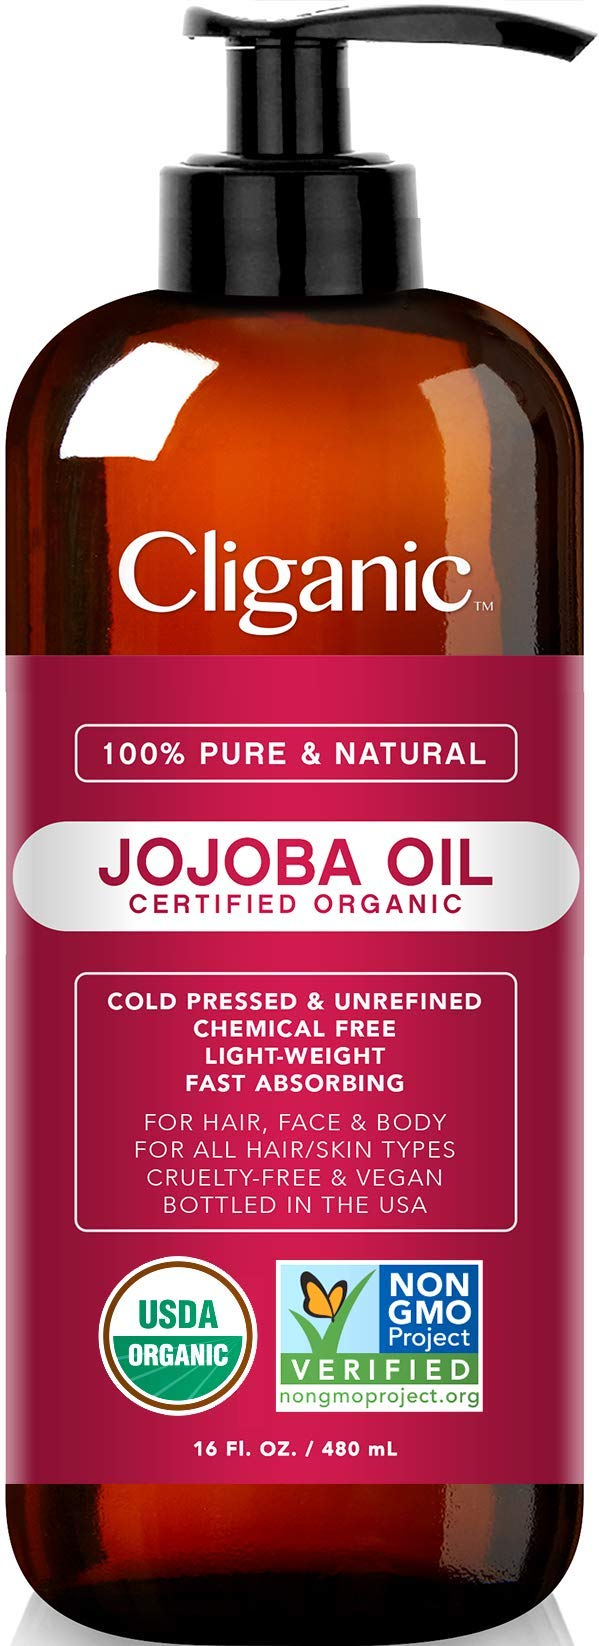 Certified Organic Jojoba Oil 473ml with Pump | 100% Pure Natural Cold Pressed Unrefined, Hexane Free Carrier Oil | for Hair Face & Nails | Cliganic 90 Days Warranty